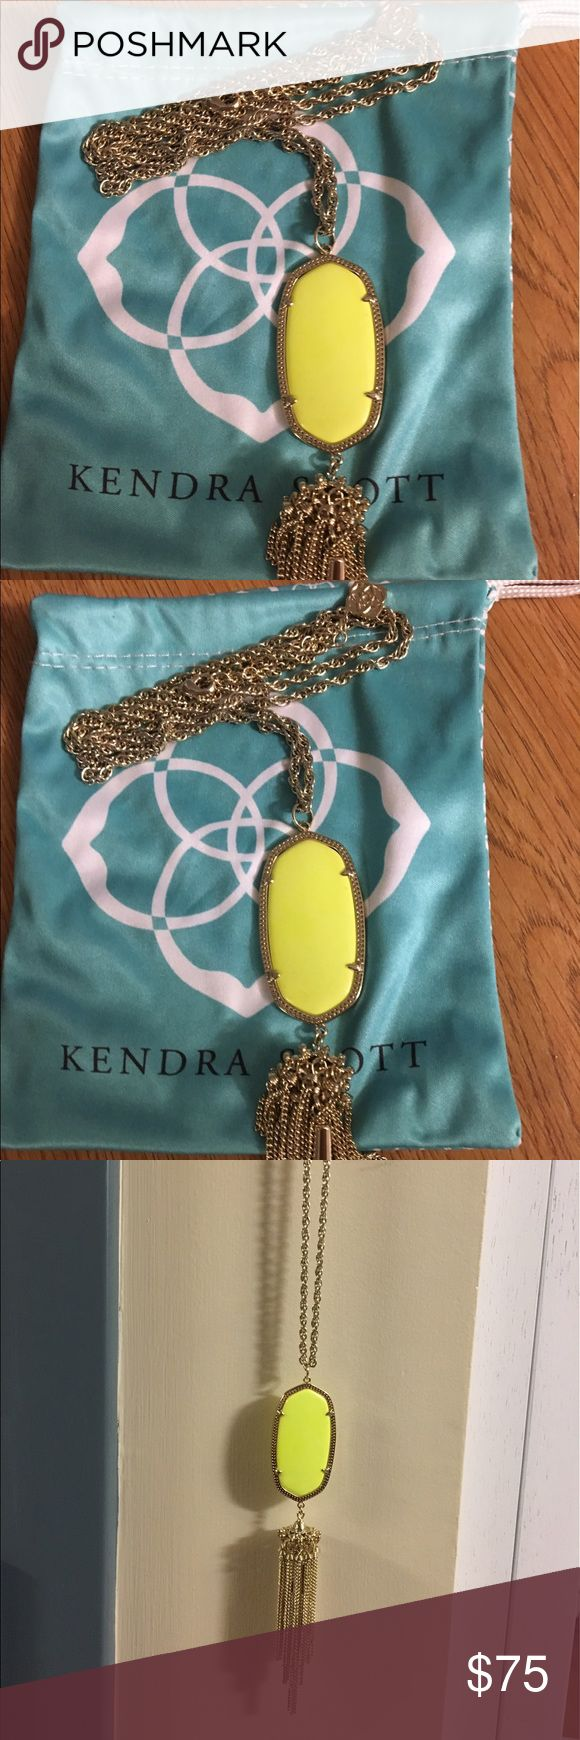 RARE Neon Yellow Kendra Scott Rayne Necklace RARE!!! Not sold in Kendra Scott stores or online! Immaculate condition, worn twice and kept in dust bag. Comes with the original Kendra Scott dust bag. Kendra Scott Jewelry Necklaces